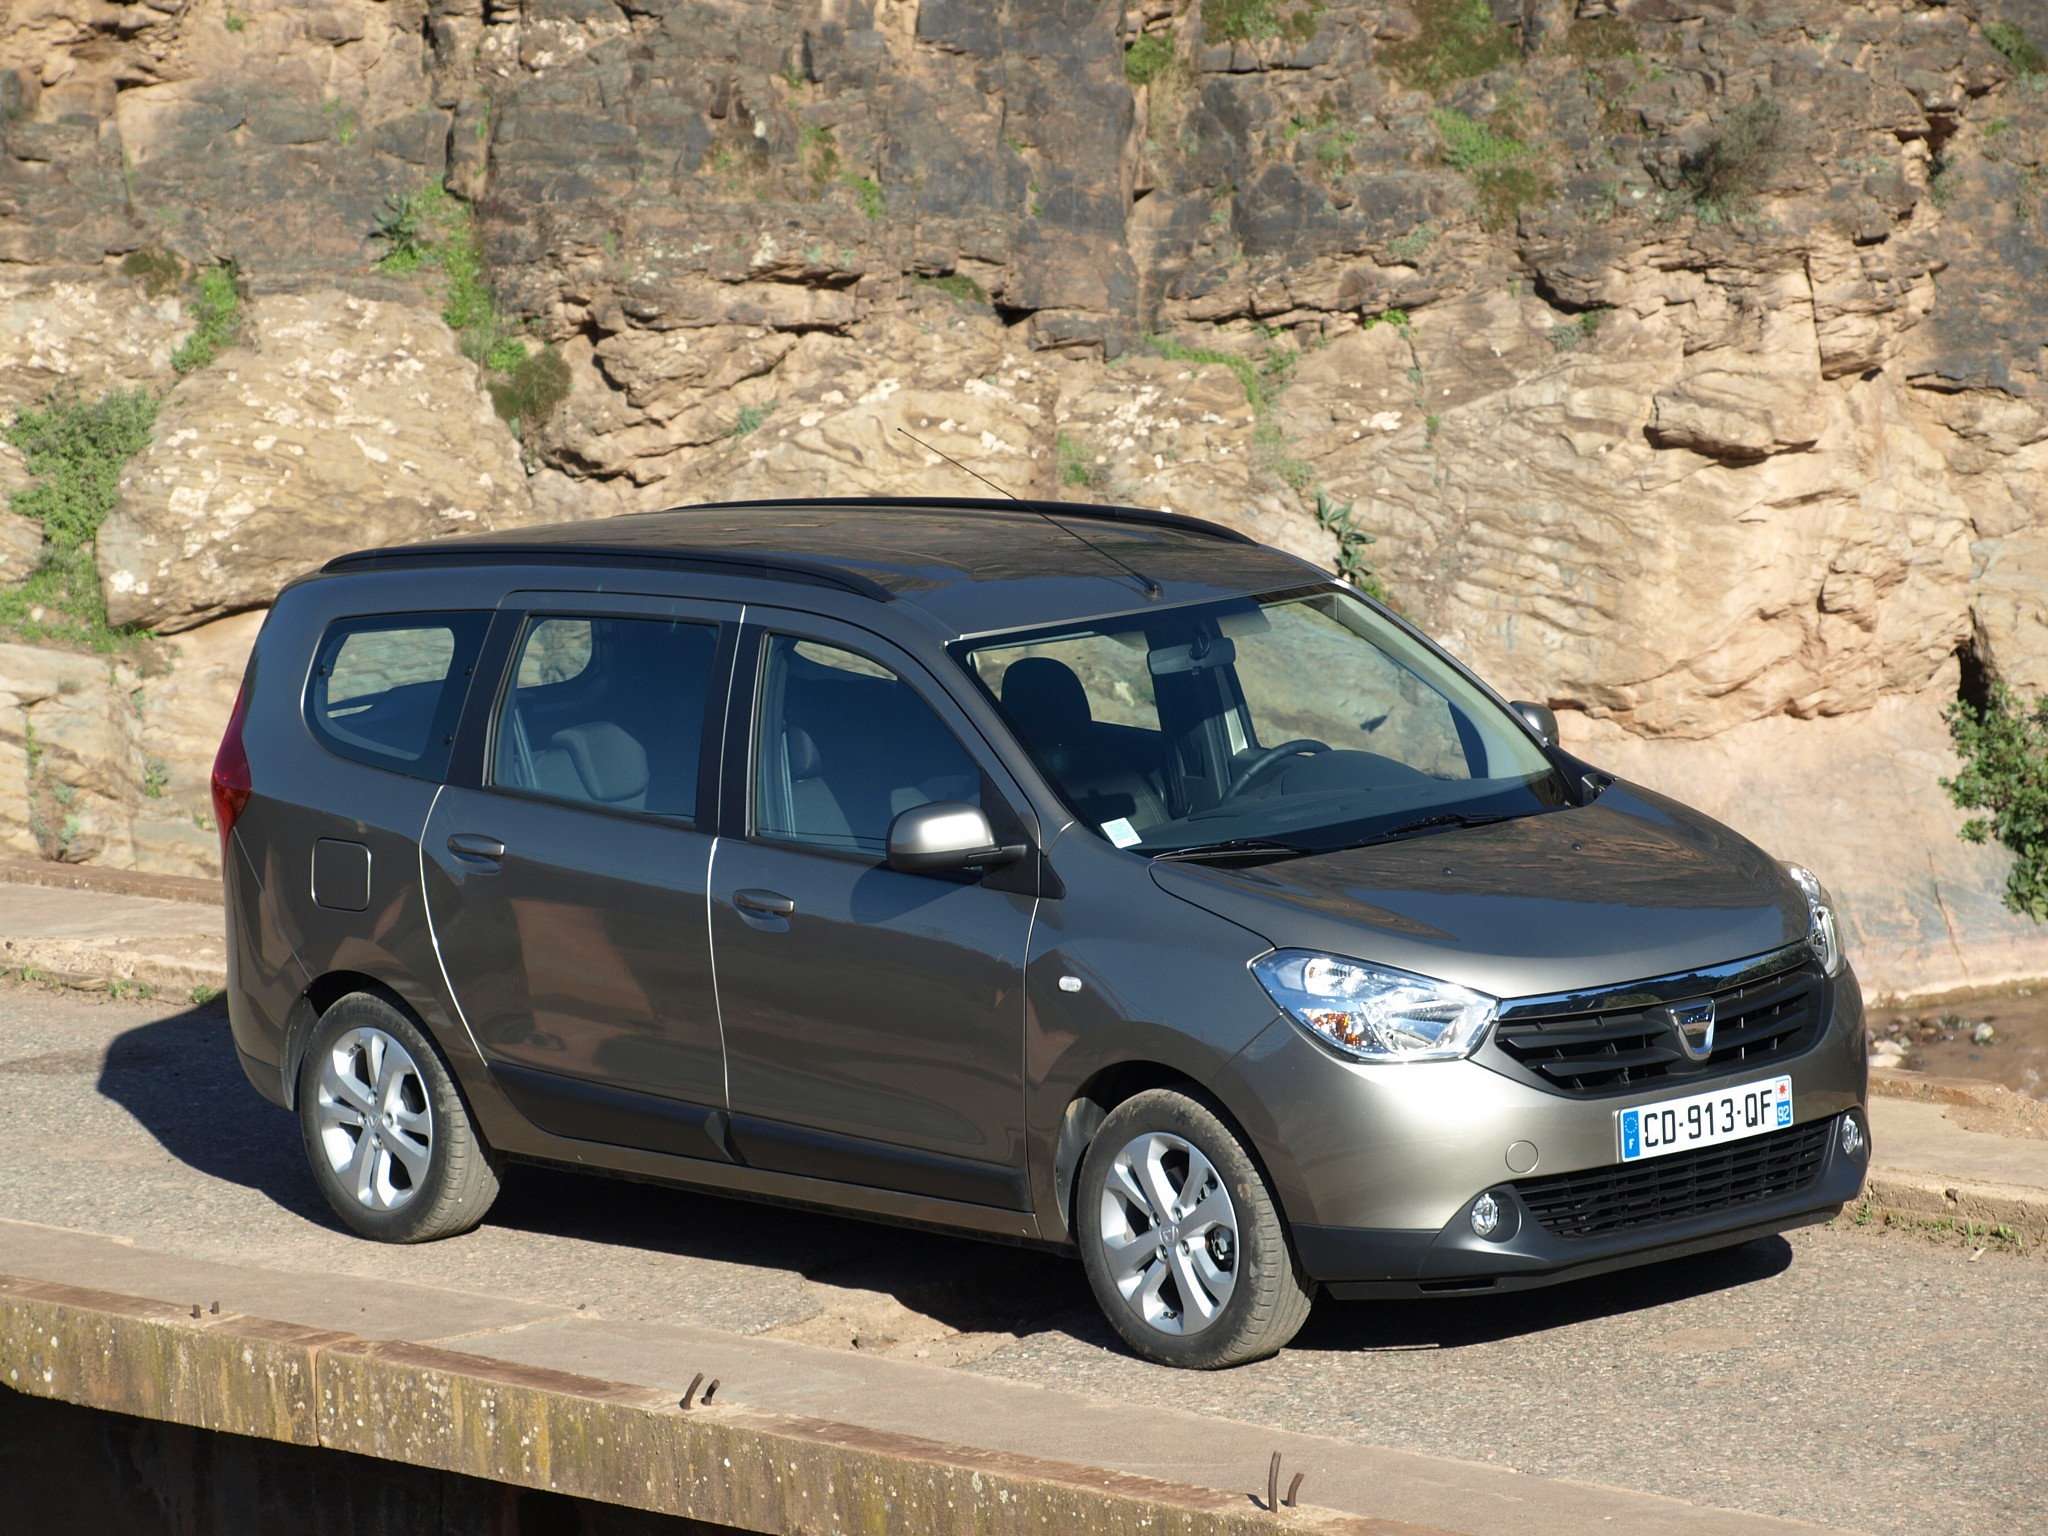 Dacia Lodgy photo #91943